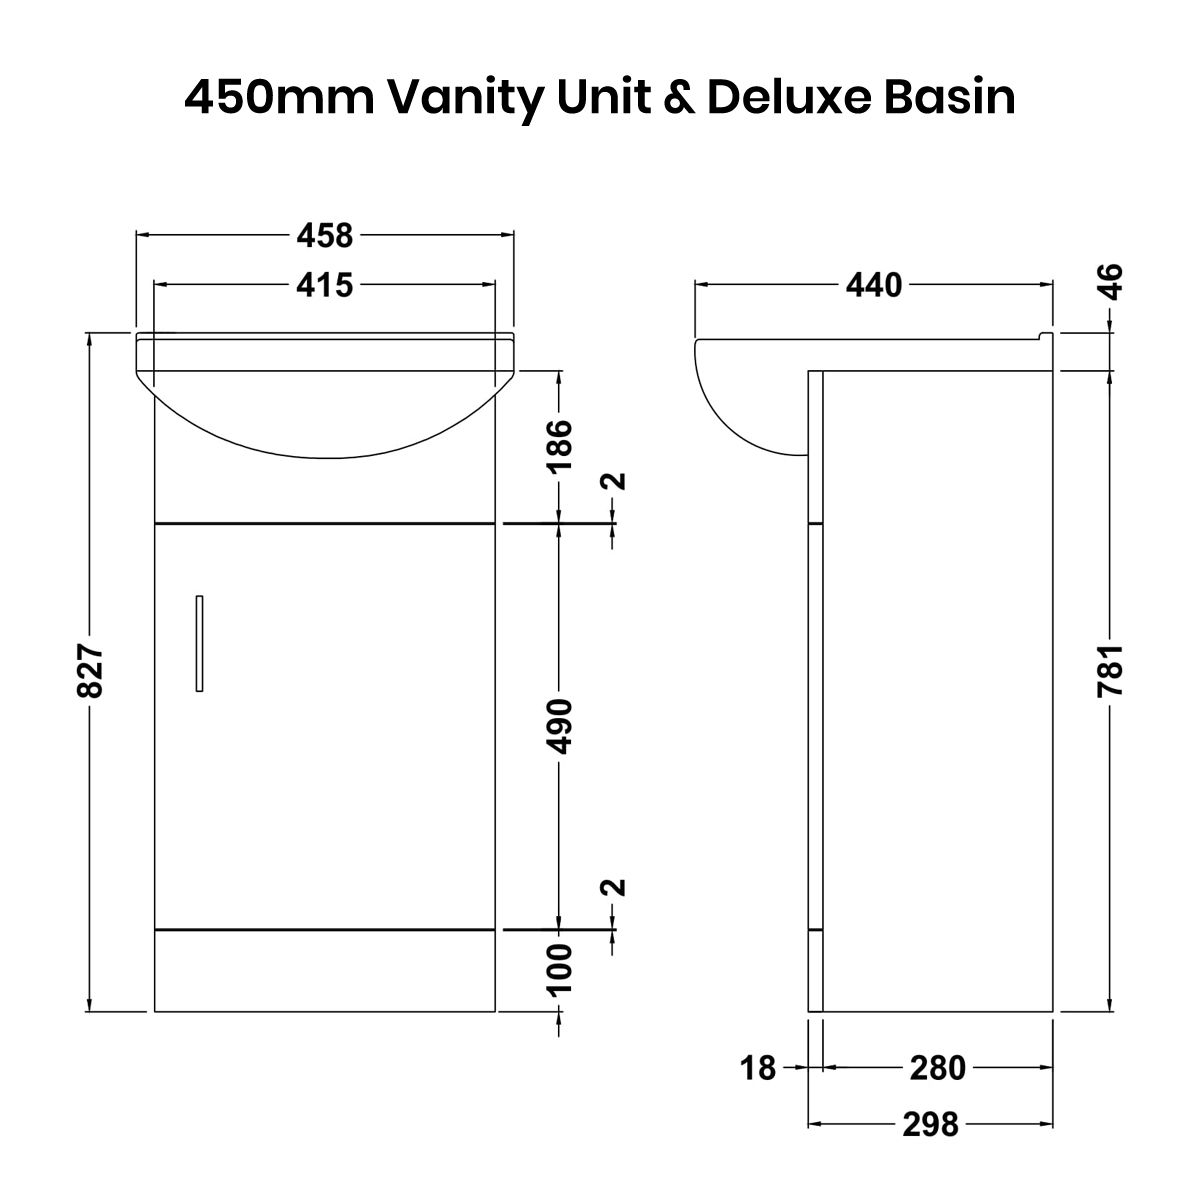 Nuie High Gloss White Vanity Unit 450mm Deluxe Basin Dimensions